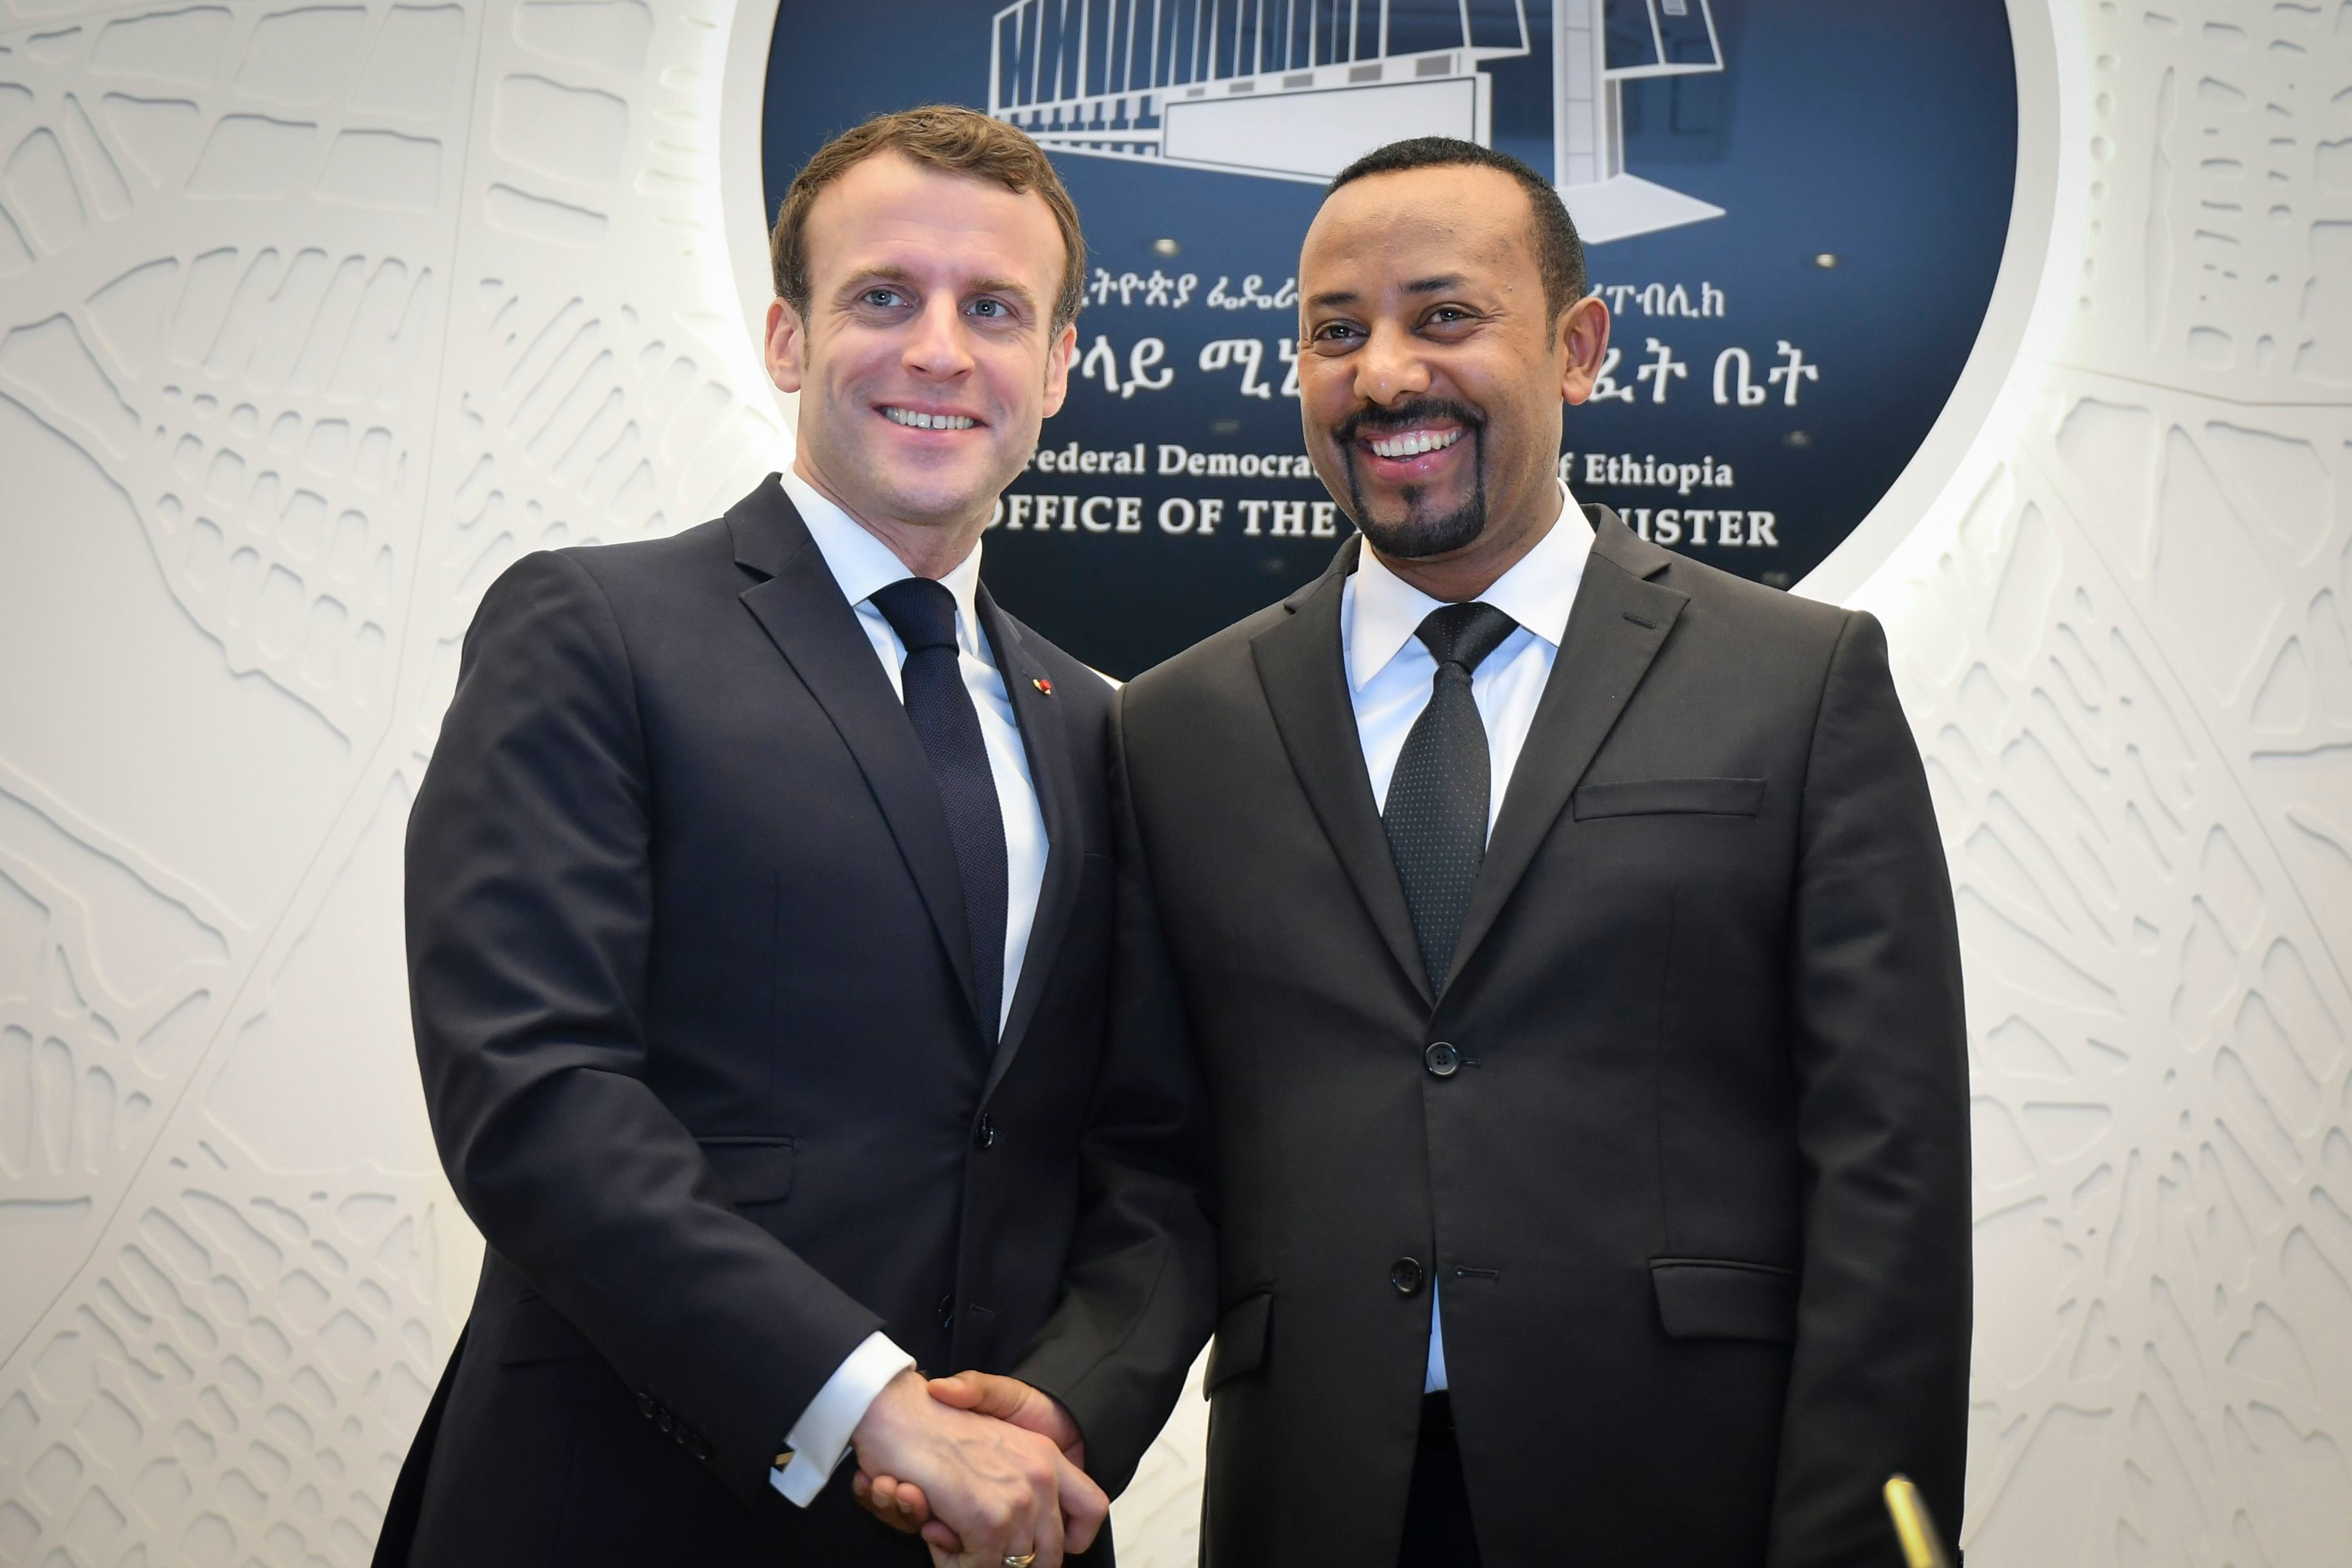 President of France Emmanuel Macron (L) and the Prime Minister of Ethiopia Abiy Ahmed (R) shake hands as they pose for photographers during their meeting at the premier's office in Addis Ababa, Ethiopia, 12 March 2019. Macron is in the country after visiting Djibouti during his four-day tour of the East African countries that will also take him to Kenya the following day. His first visit to the region aims to strengthen bilateral relationships with non-Francophone African nations. French President Emmanuel Macron visits Ethiopia, Addis Ababa - 12 Mar 2019